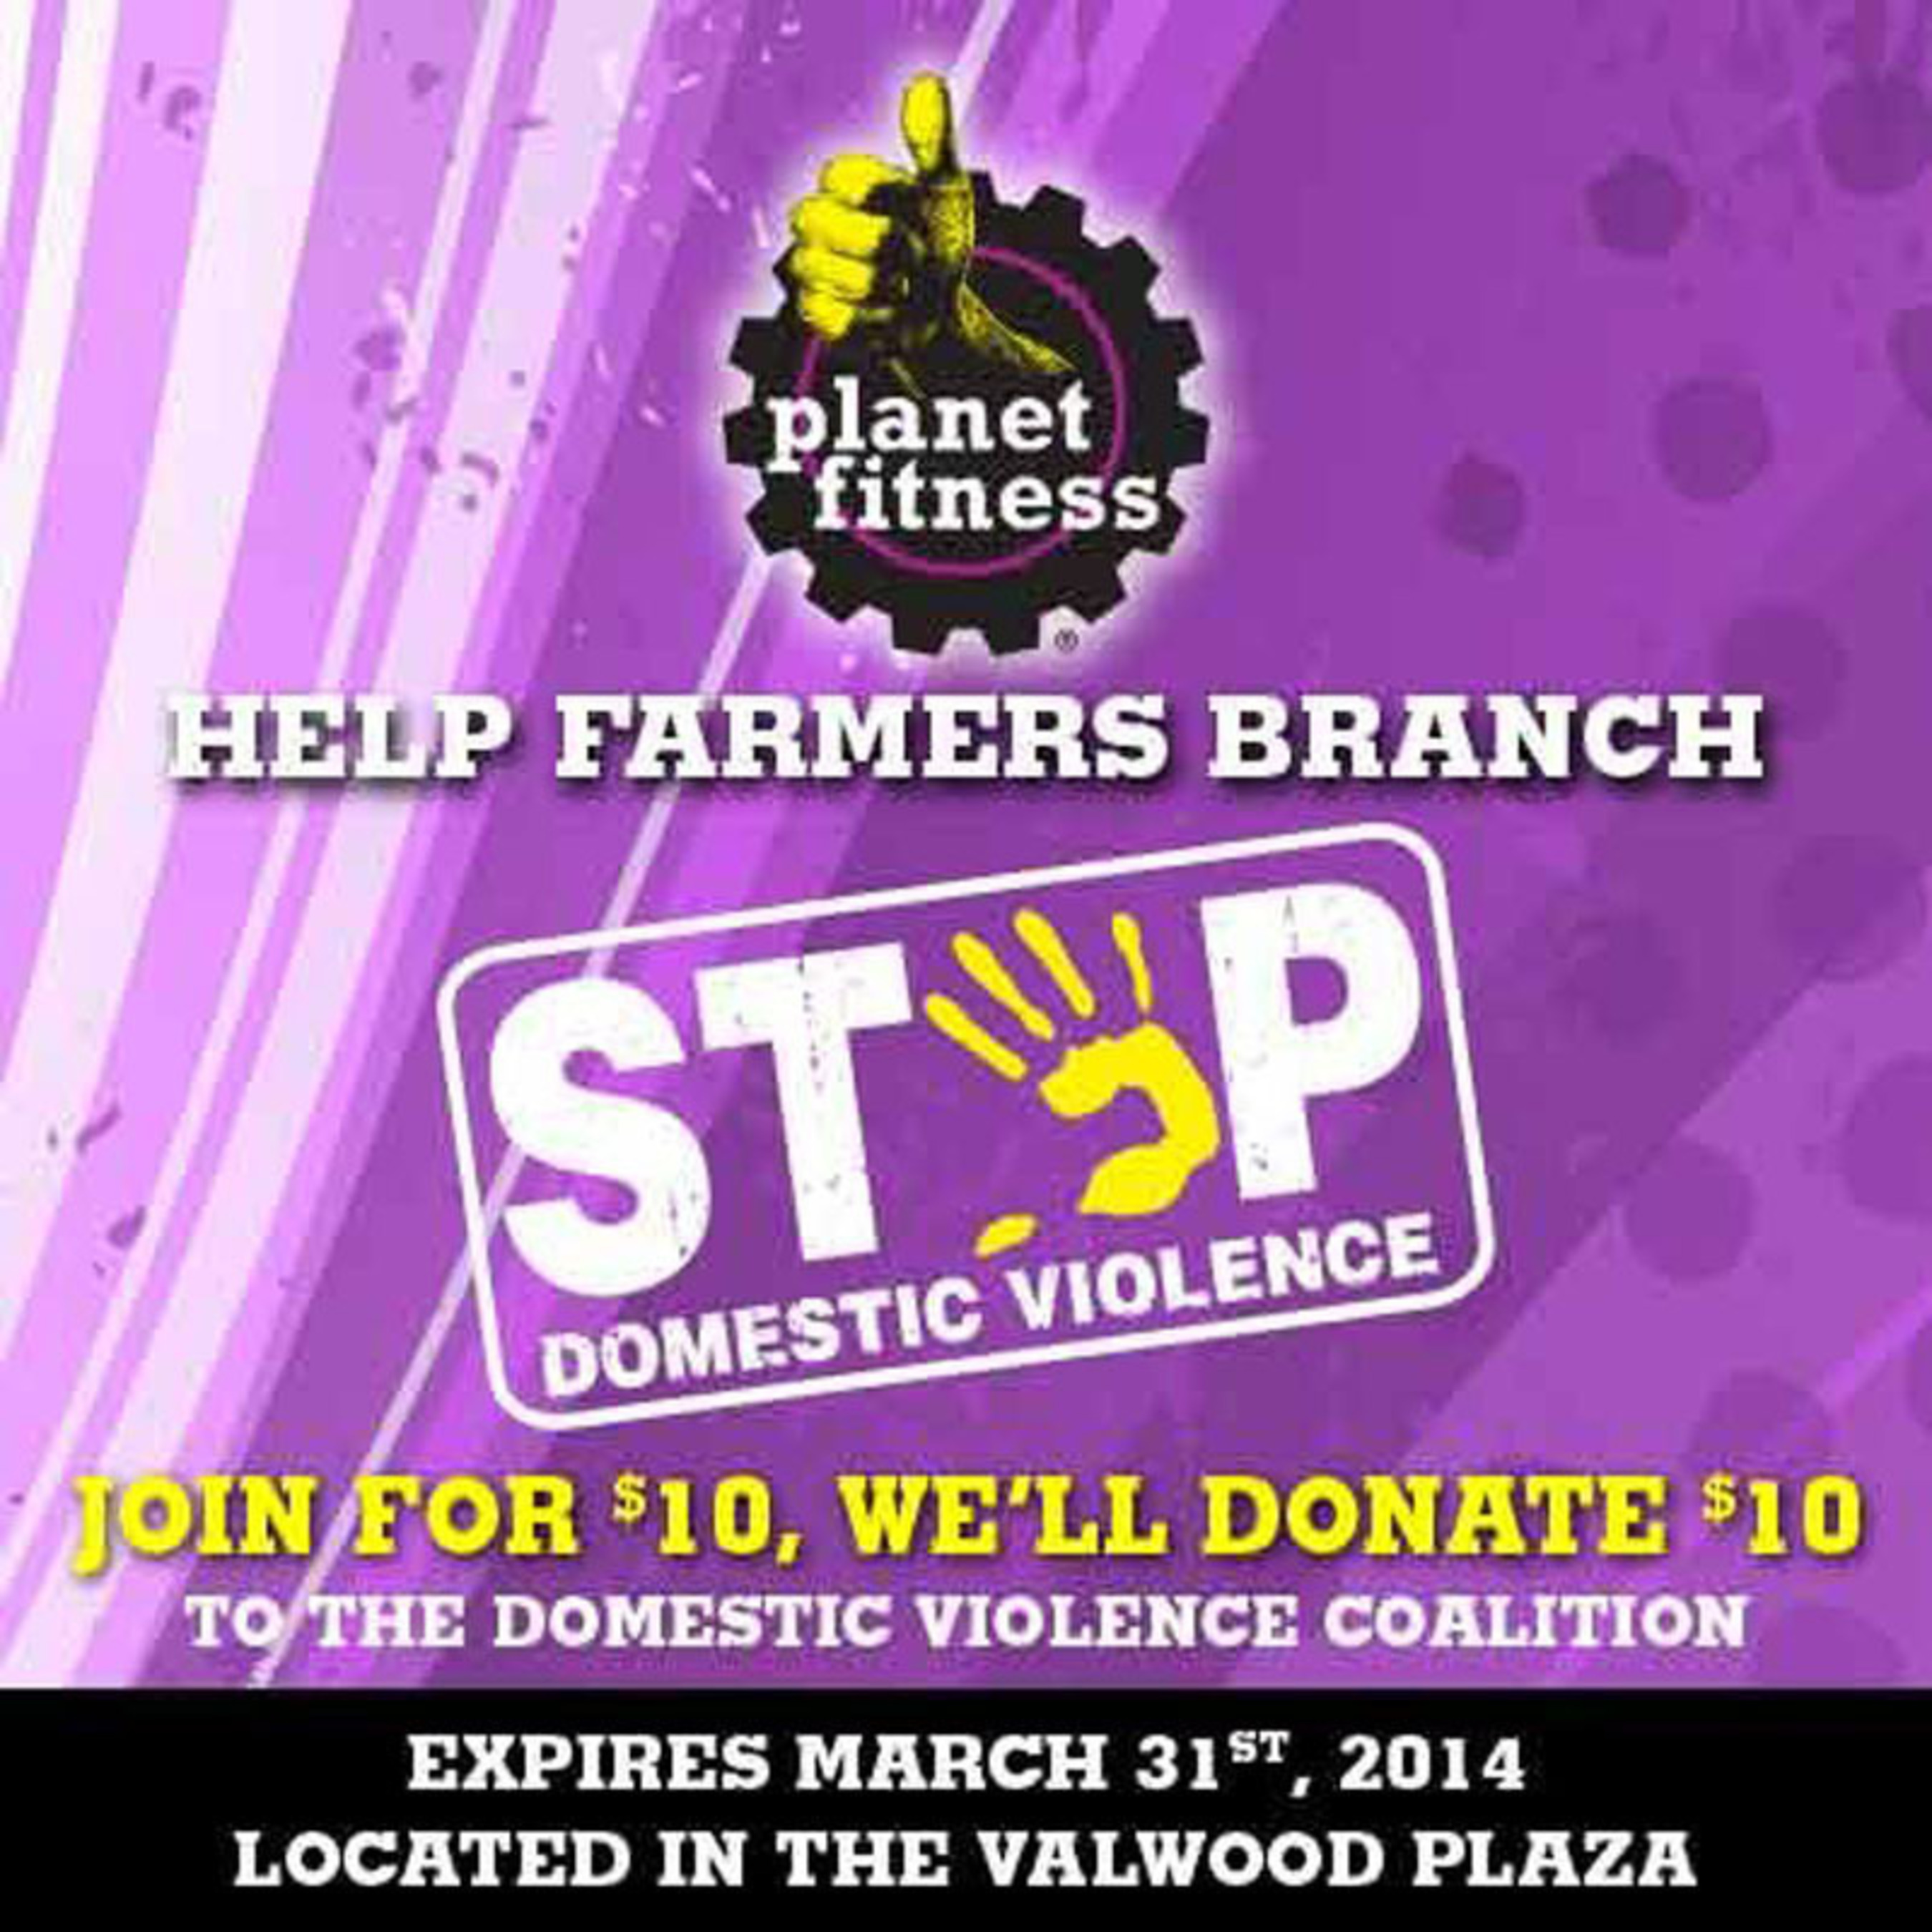 """Planet Fitness in Farmers Branch helps """"Paint the Town Purple"""" to raise awareness for Domestic Violence. Their signature color, purple, evokes feelings of warmth, power, joy and happiness. (PRNewsFoto/Planet Fitness)"""